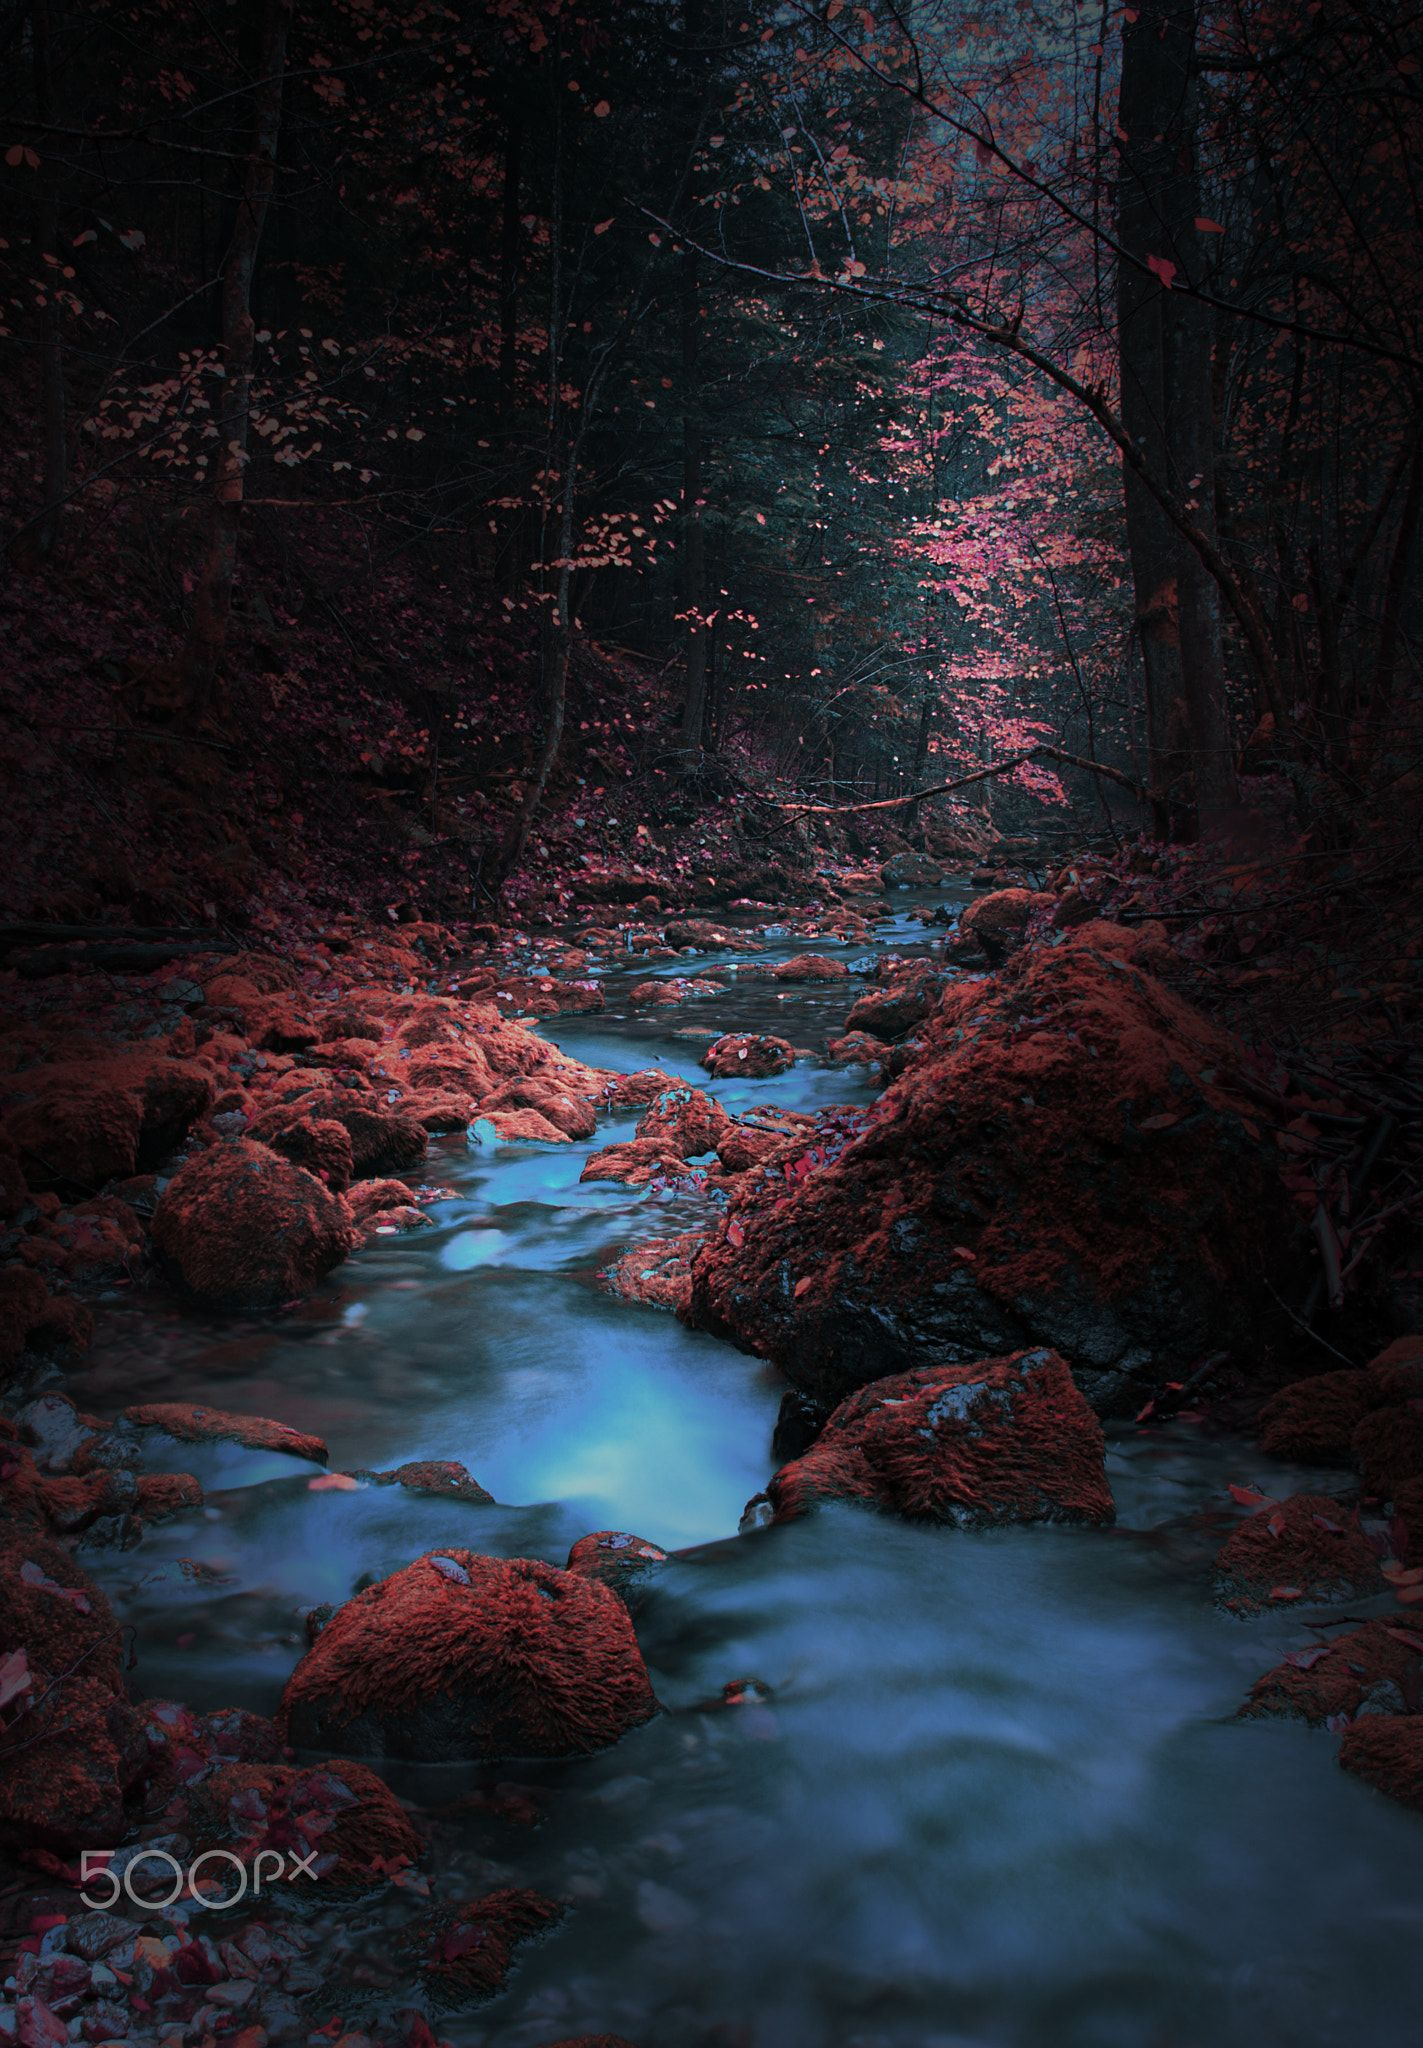 Pin By Ruben Almaraz On Creativ In 2020 Photoshop Digital Background Natural Scenery Photo Background Images